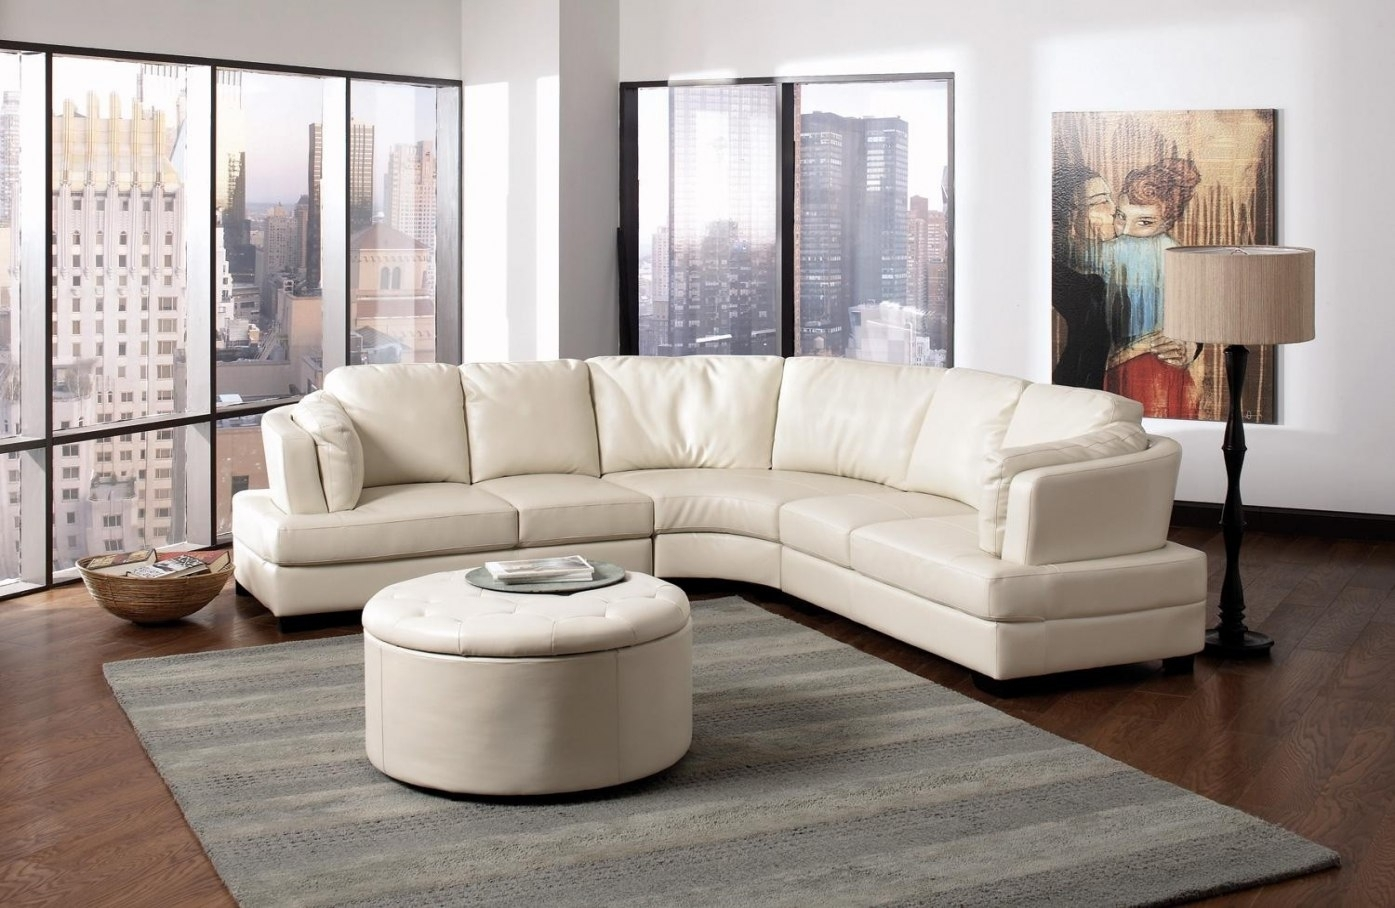 Backless Sectional Sofa Misskellybra Sofa Site For Backless Sectional Sofa (Image 3 of 15)